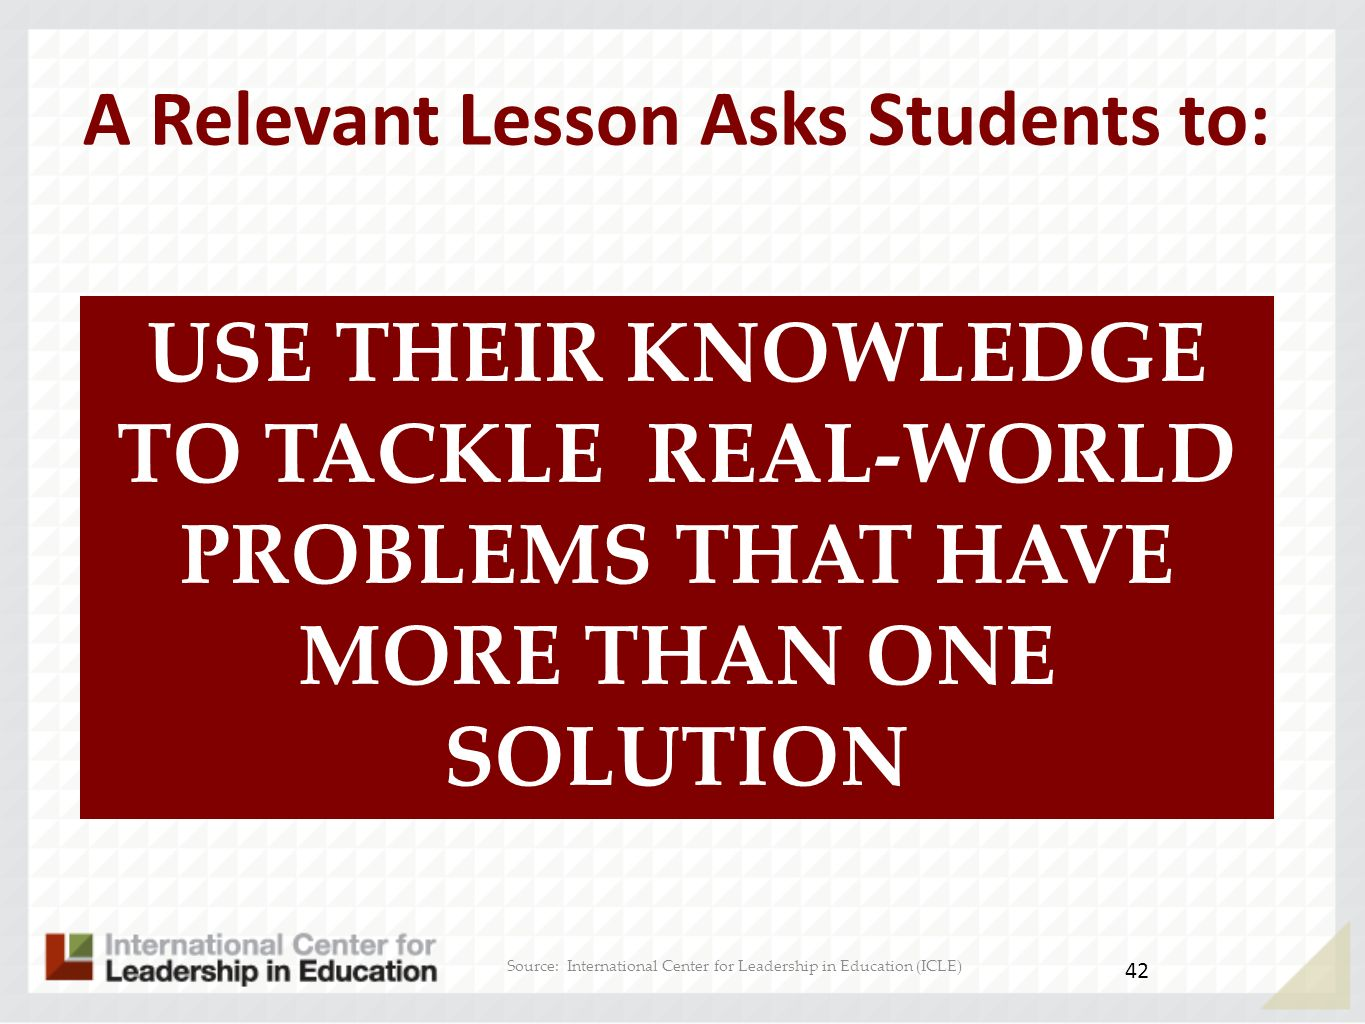 A Relevant Lesson Asks Students to: